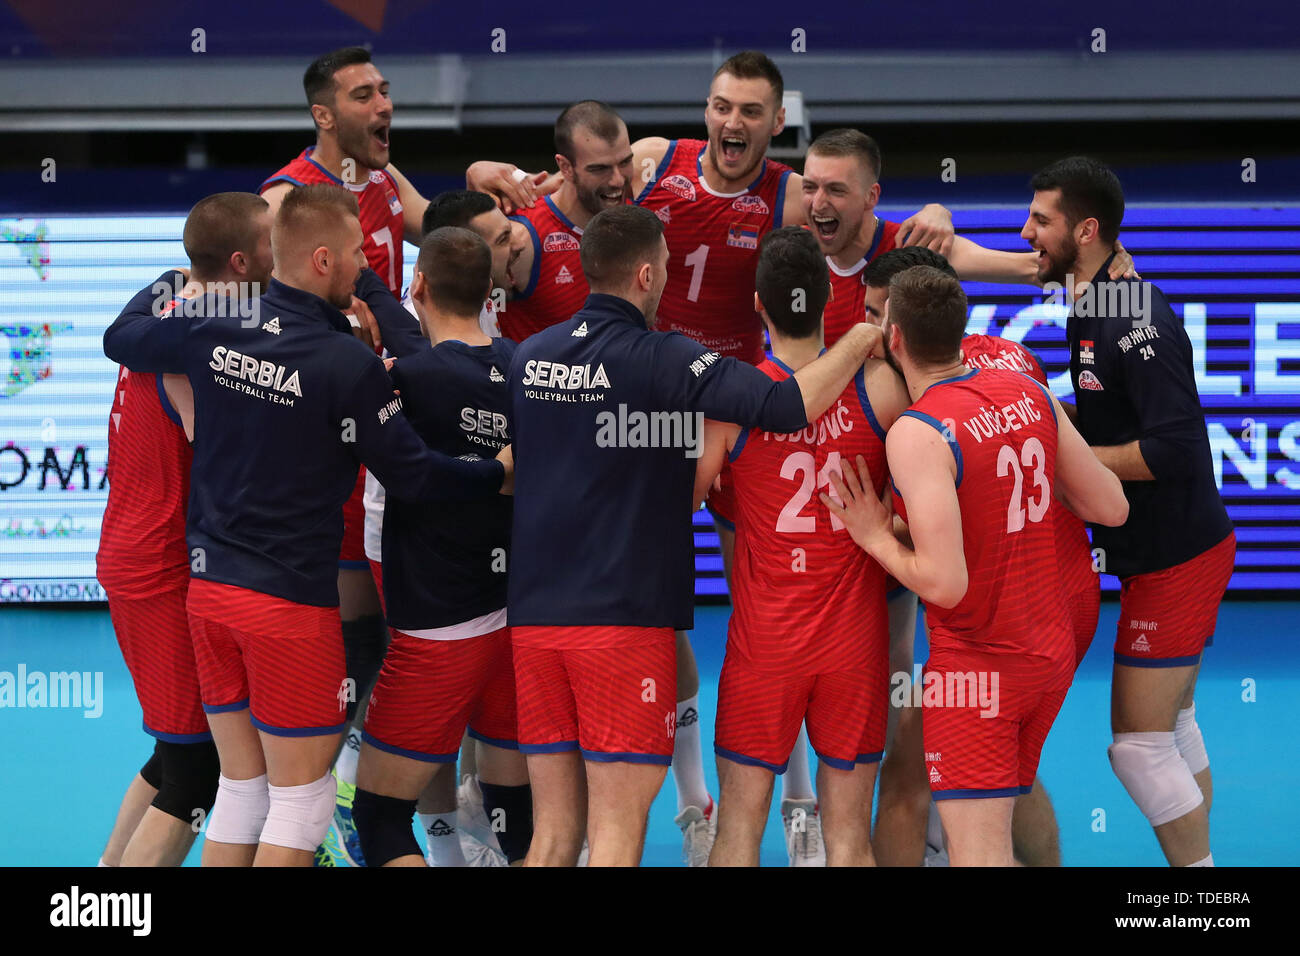 Gondomar, Portugal  14th June, 2019  Serbia's players celebrate